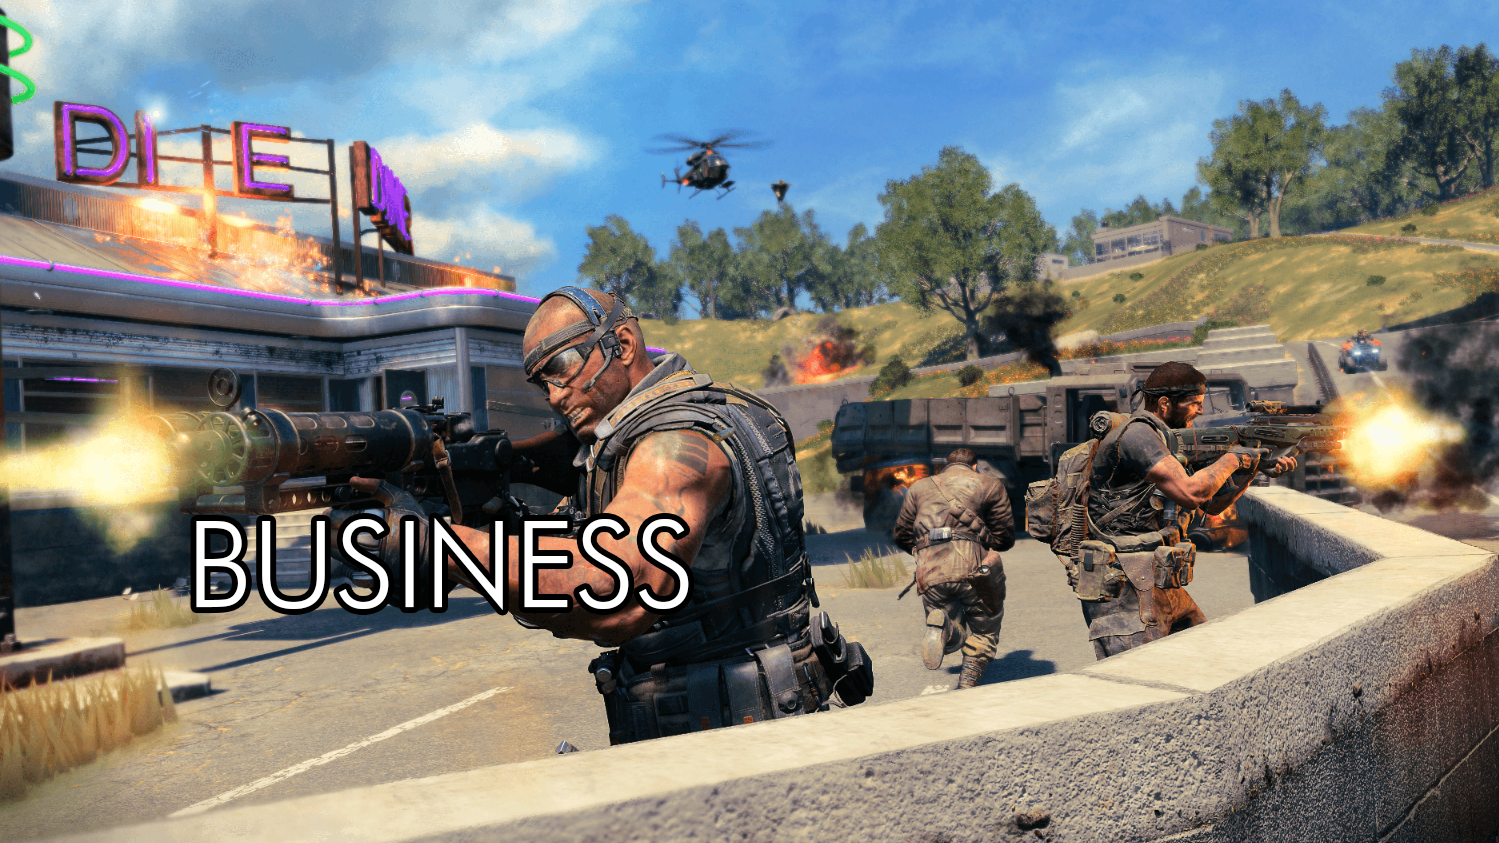 This Week In The Business: Always Bet On Black (Ops)